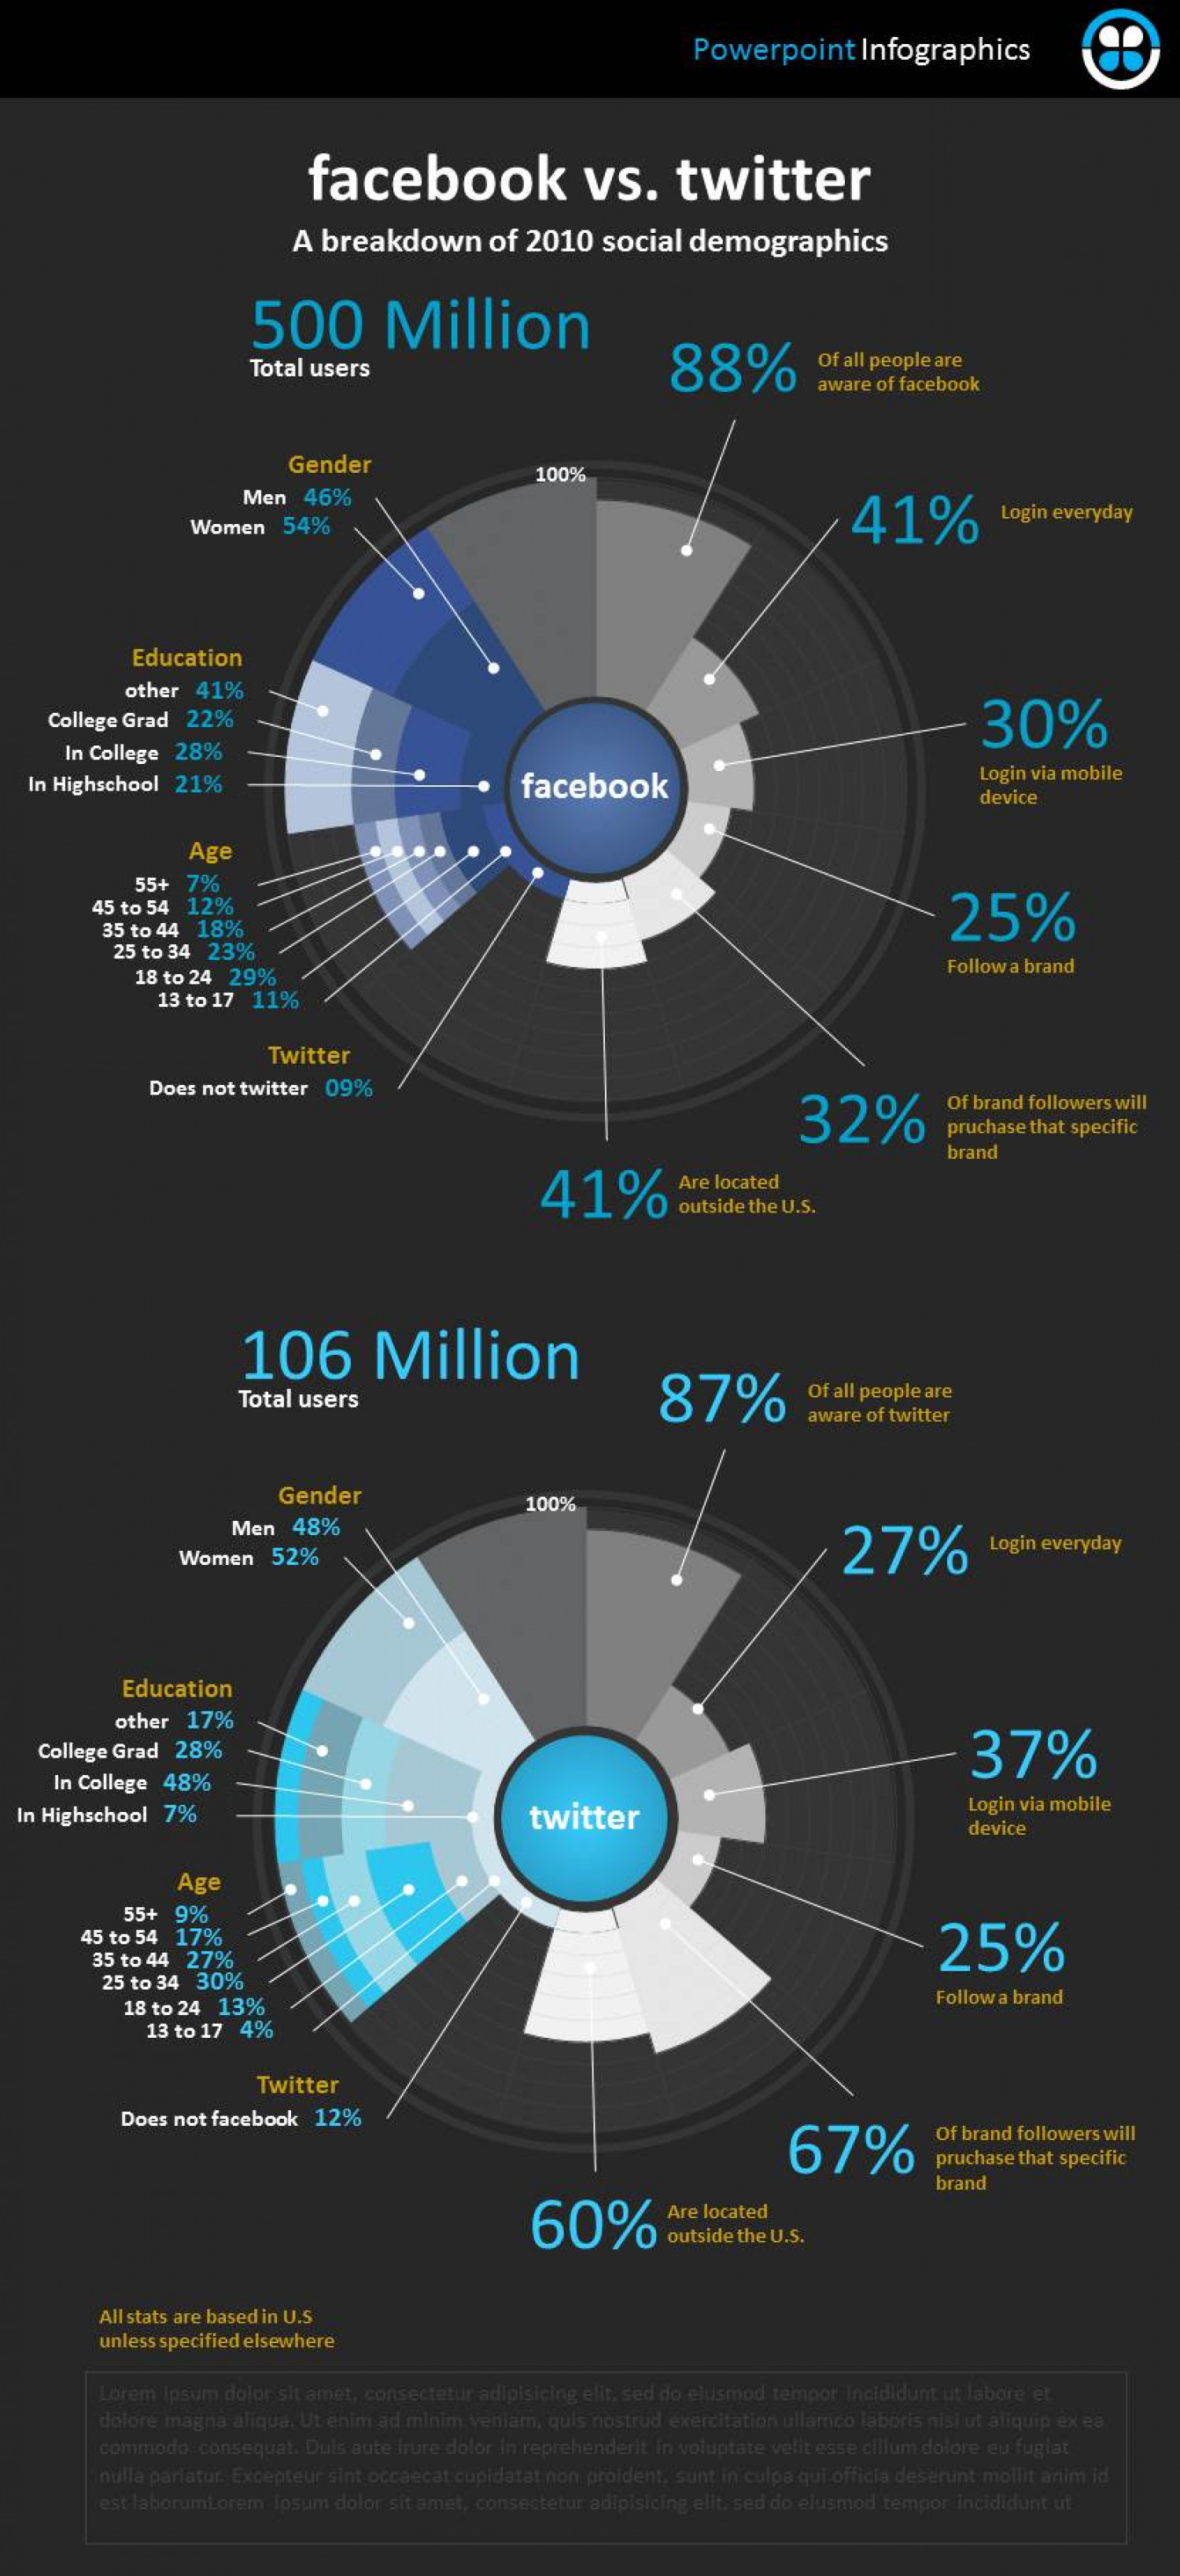 Facebook vs. Twitter Infographic Infographic